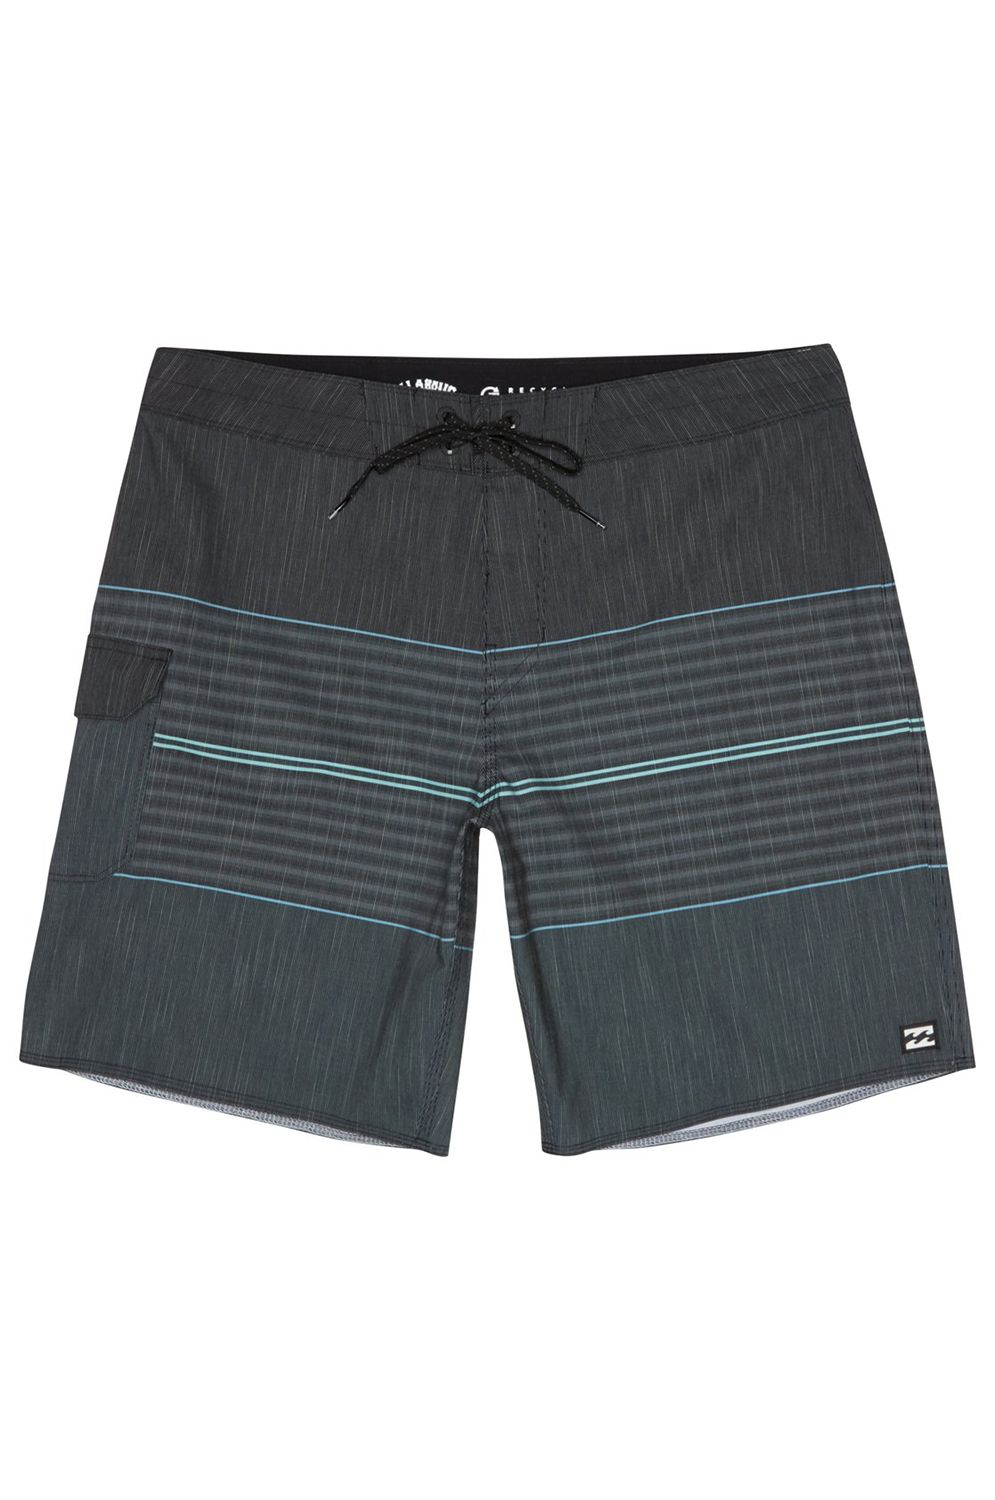 Boardshorts Billabong ALL DAY HTR STRP PRO Charcoal